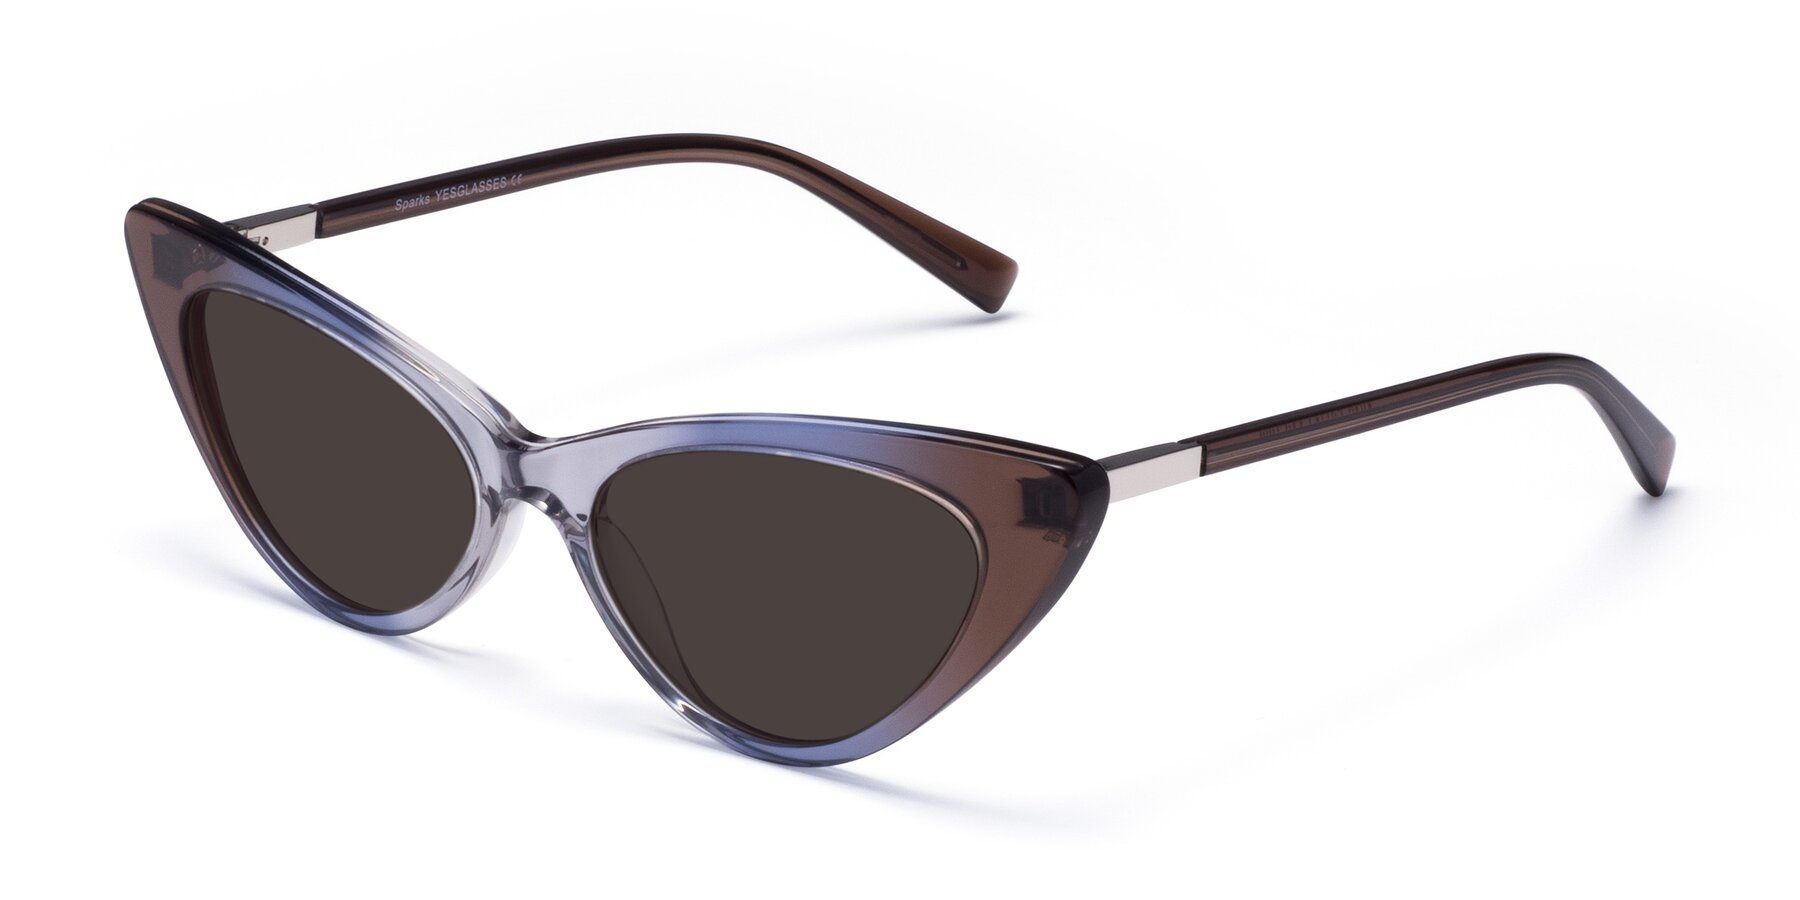 Angle of Sparks in Transparent Gradient Brown with Gray Tinted Lenses